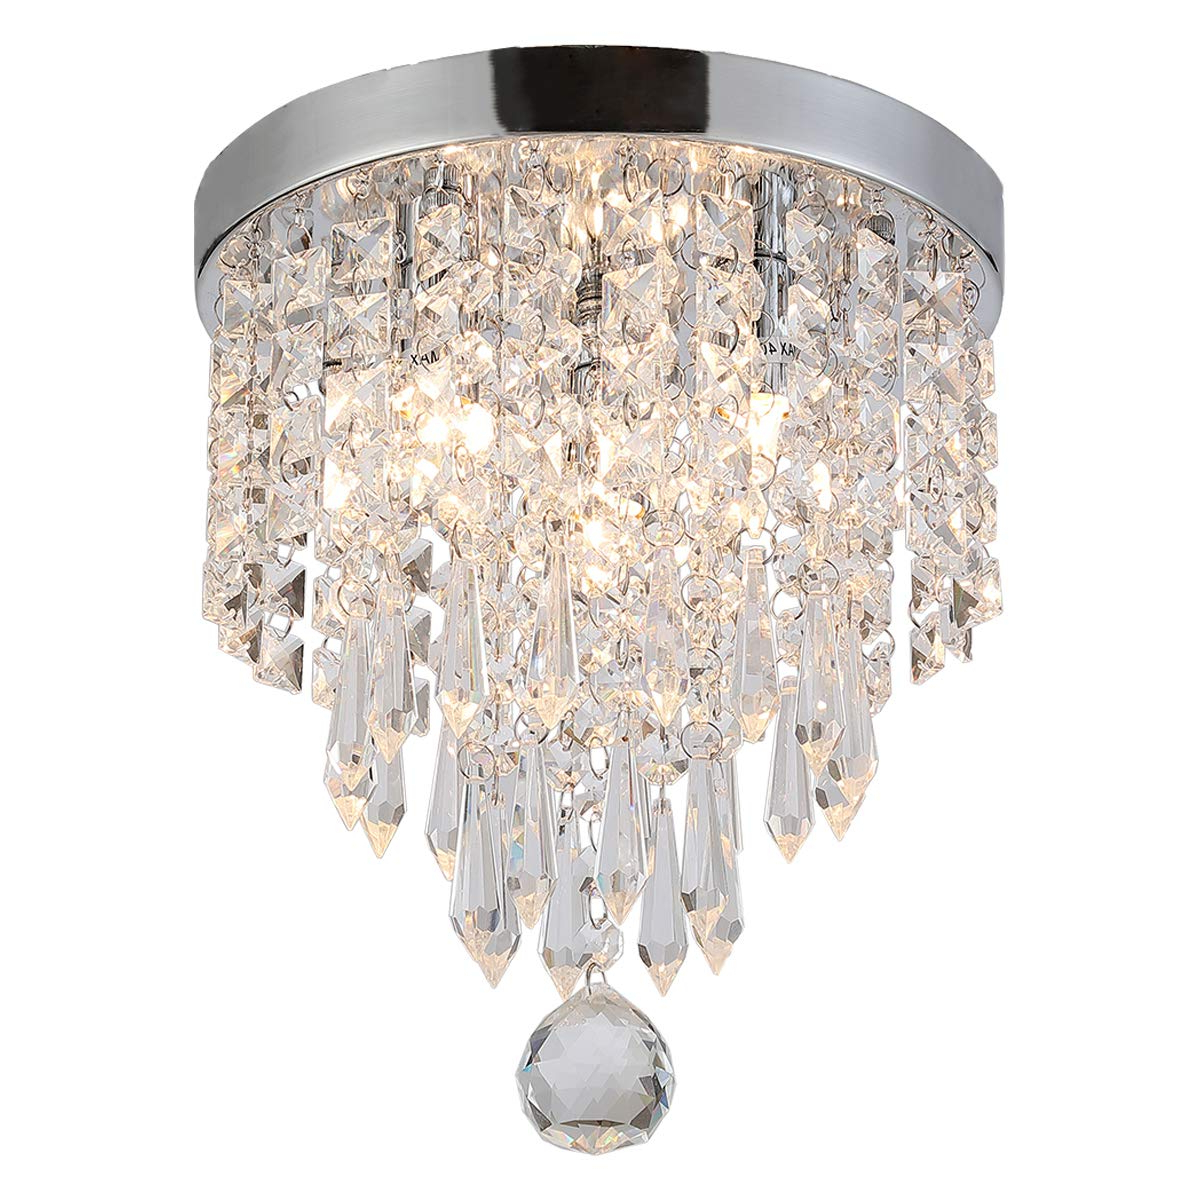 Clea 3 Light Crystal Chandeliers With Regard To Popular Riomasee Crystal Ceiling Light Mini Chandelier Elegant Design Modern  Chandeliers 3 Light Flush Mount Fixtures For Bedroom,hallway,living (View 5 of 25)